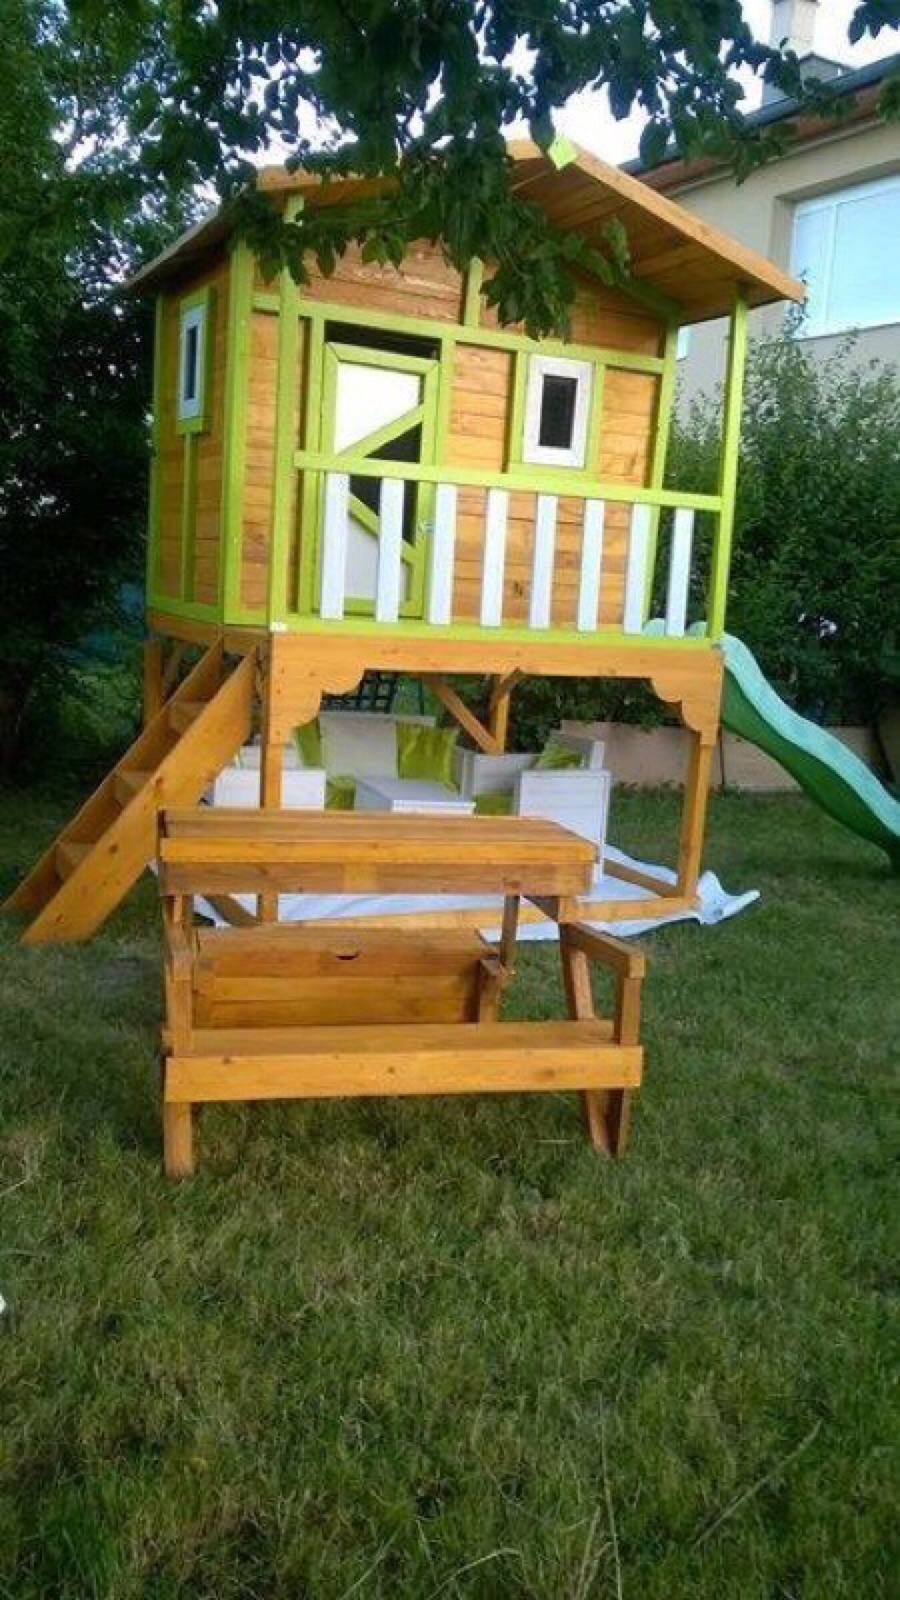 Little Pallet Play House For The ChildrenDIY Pallet